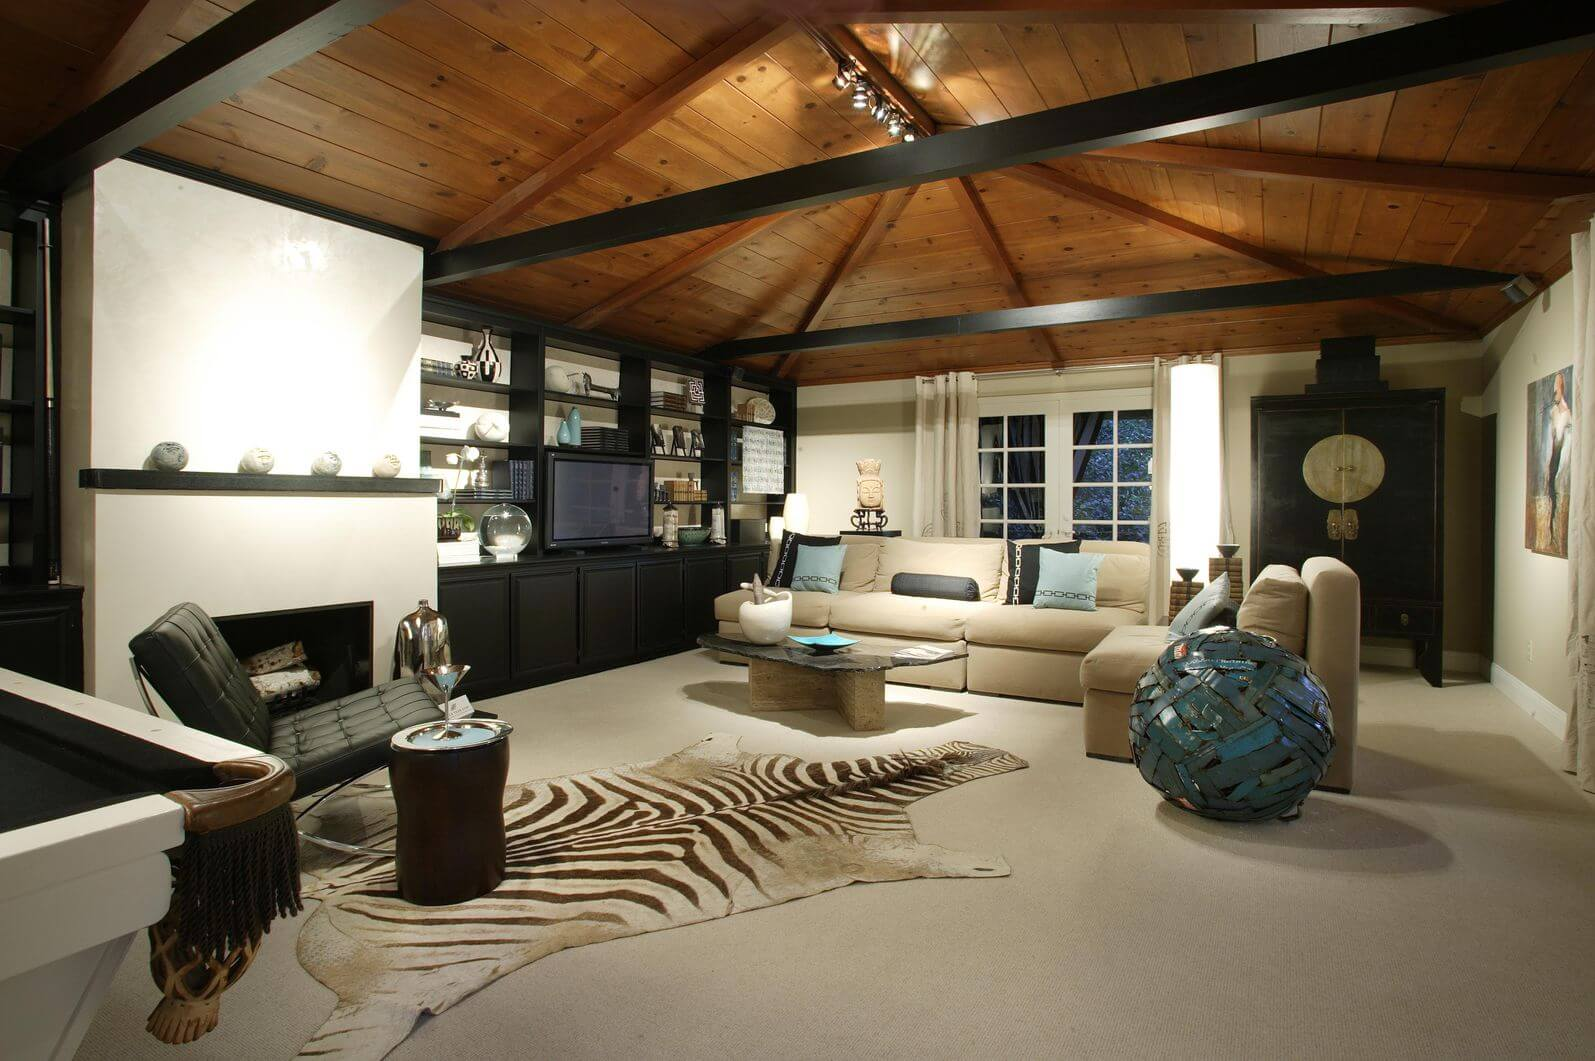 Spacious casual living room with beige armless sofa and armchair, modern black armless chair and large zebra skin on the floor spanning much of the room